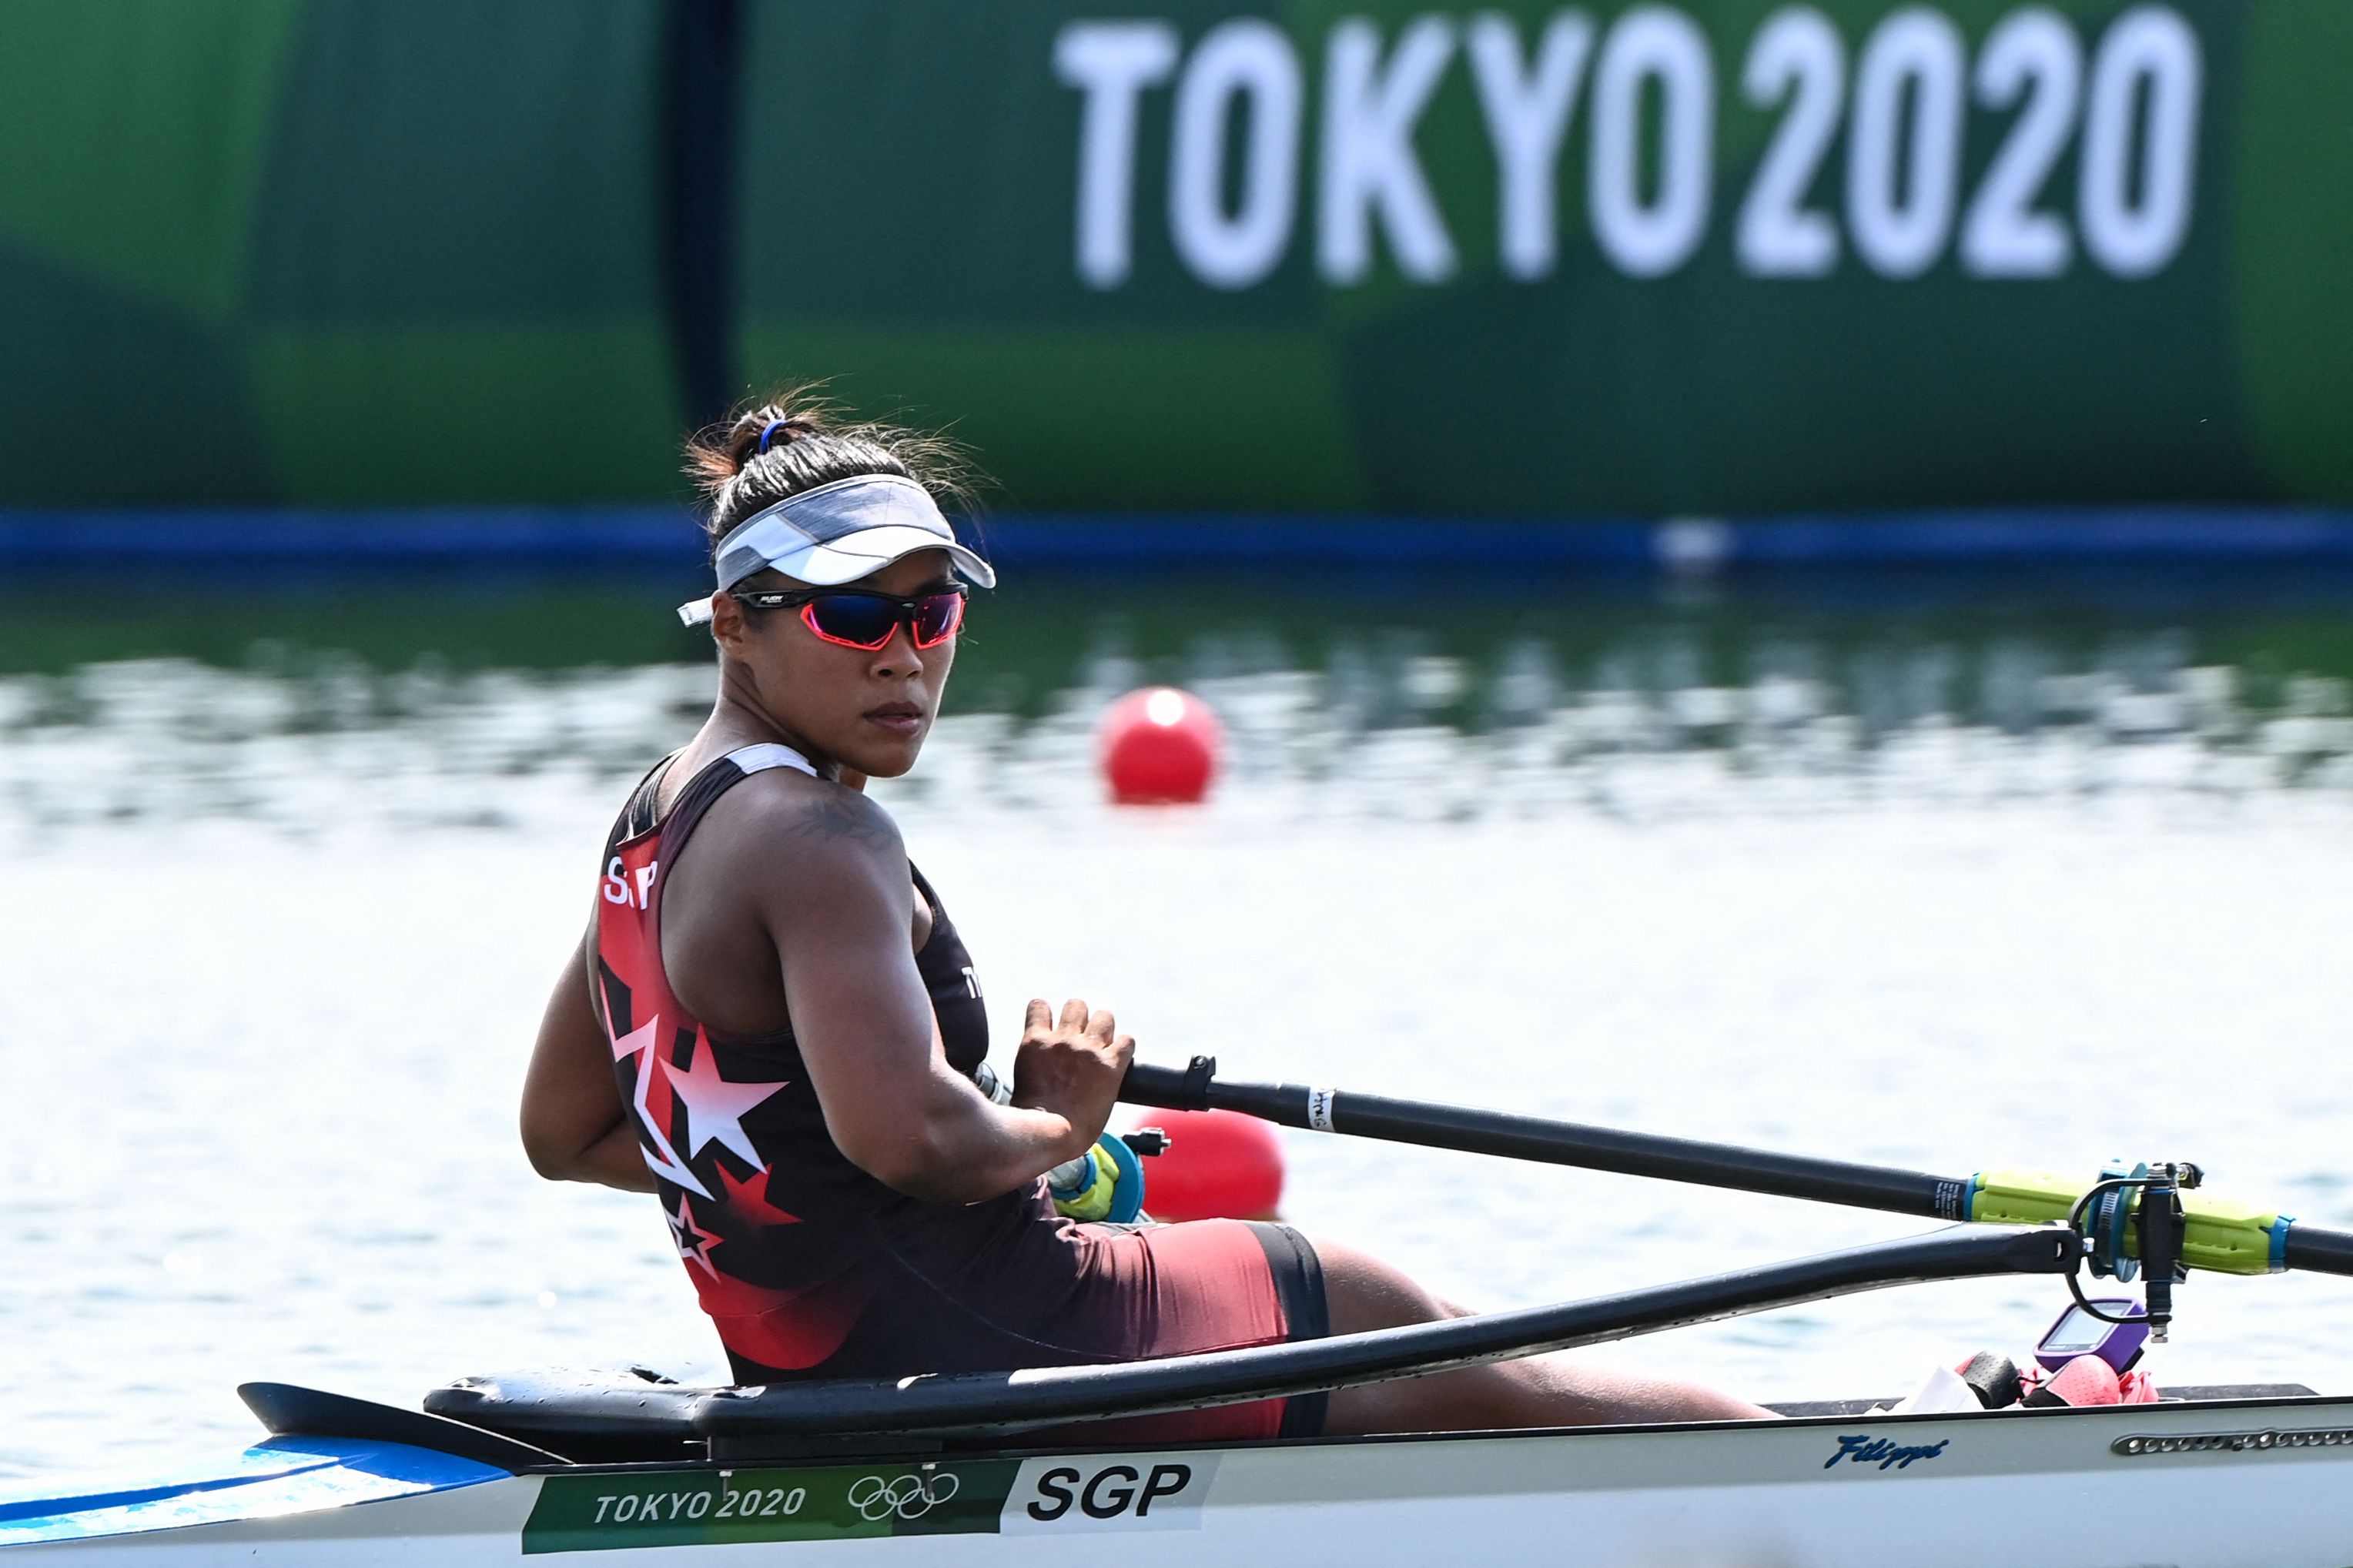 Tokyo 2020 : TeamSG Rower Joan Poh misses out on QF spot, despite decent showing in Repechage